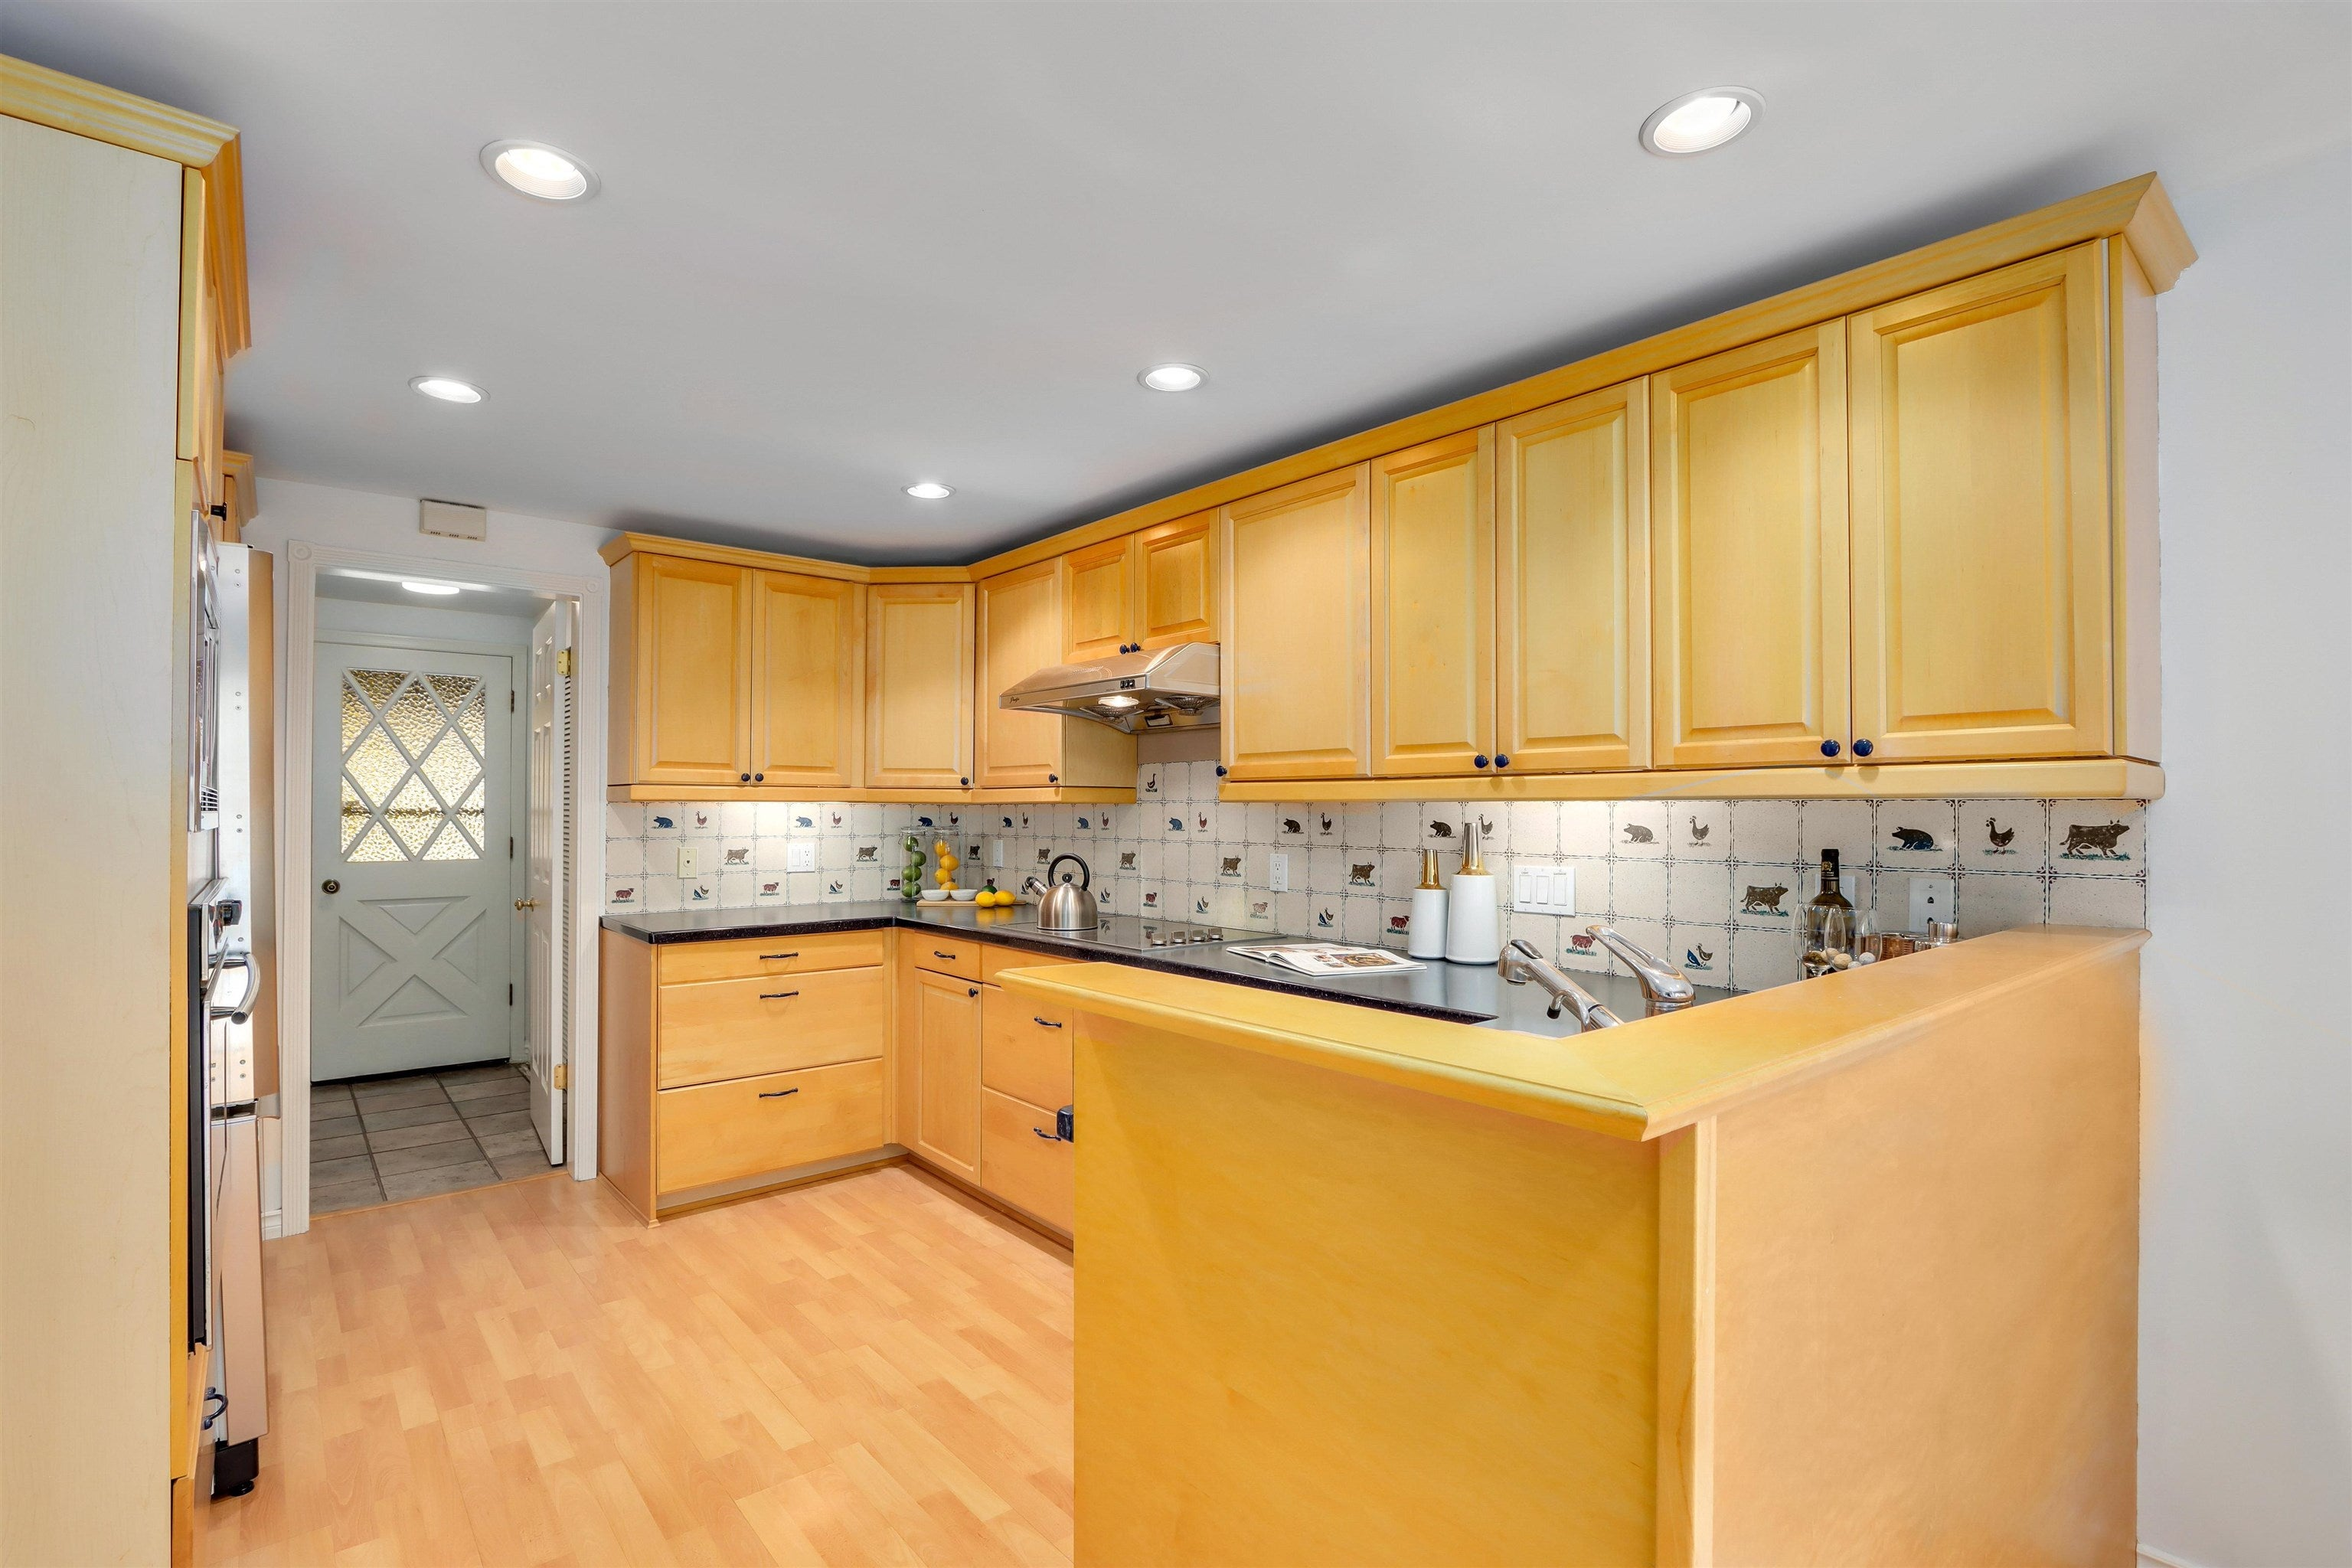 37 6600 LUCAS ROAD - Woodwards Townhouse for sale, 3 Bedrooms (R2617389) - #8